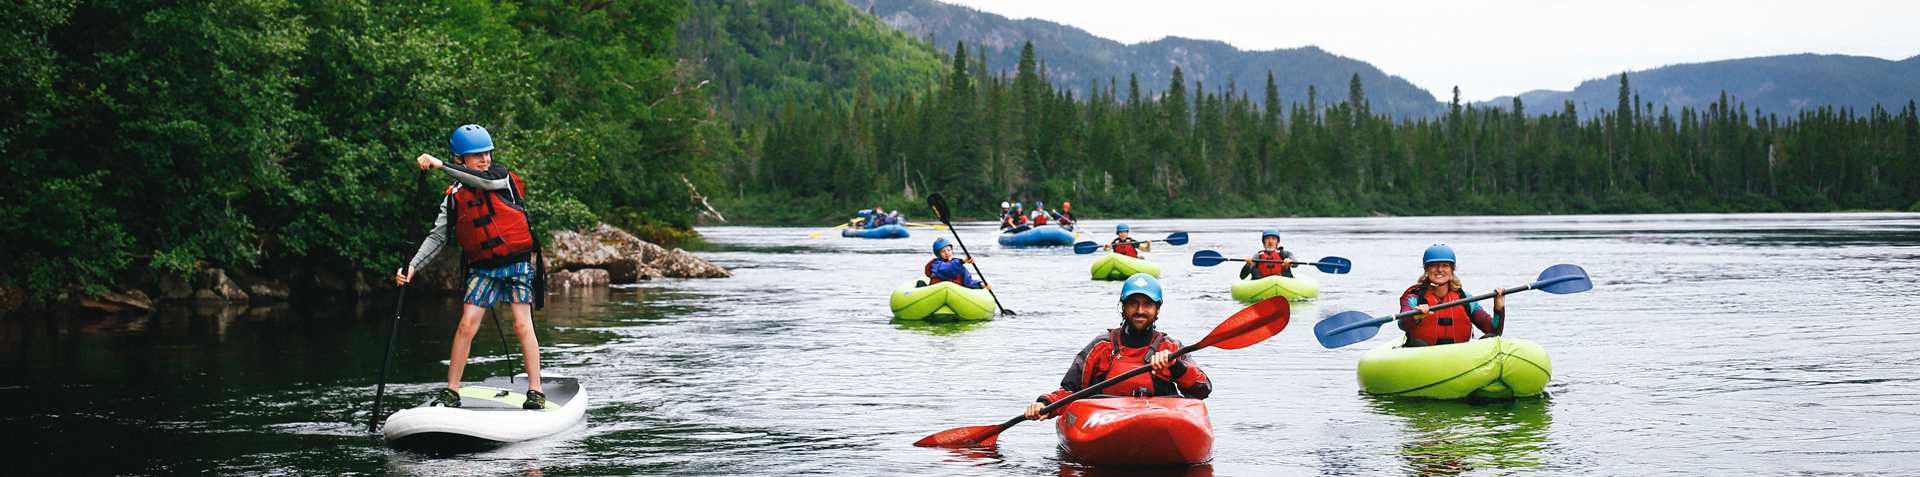 Magpie River Adventure by Boreal River Adventures - Image 400